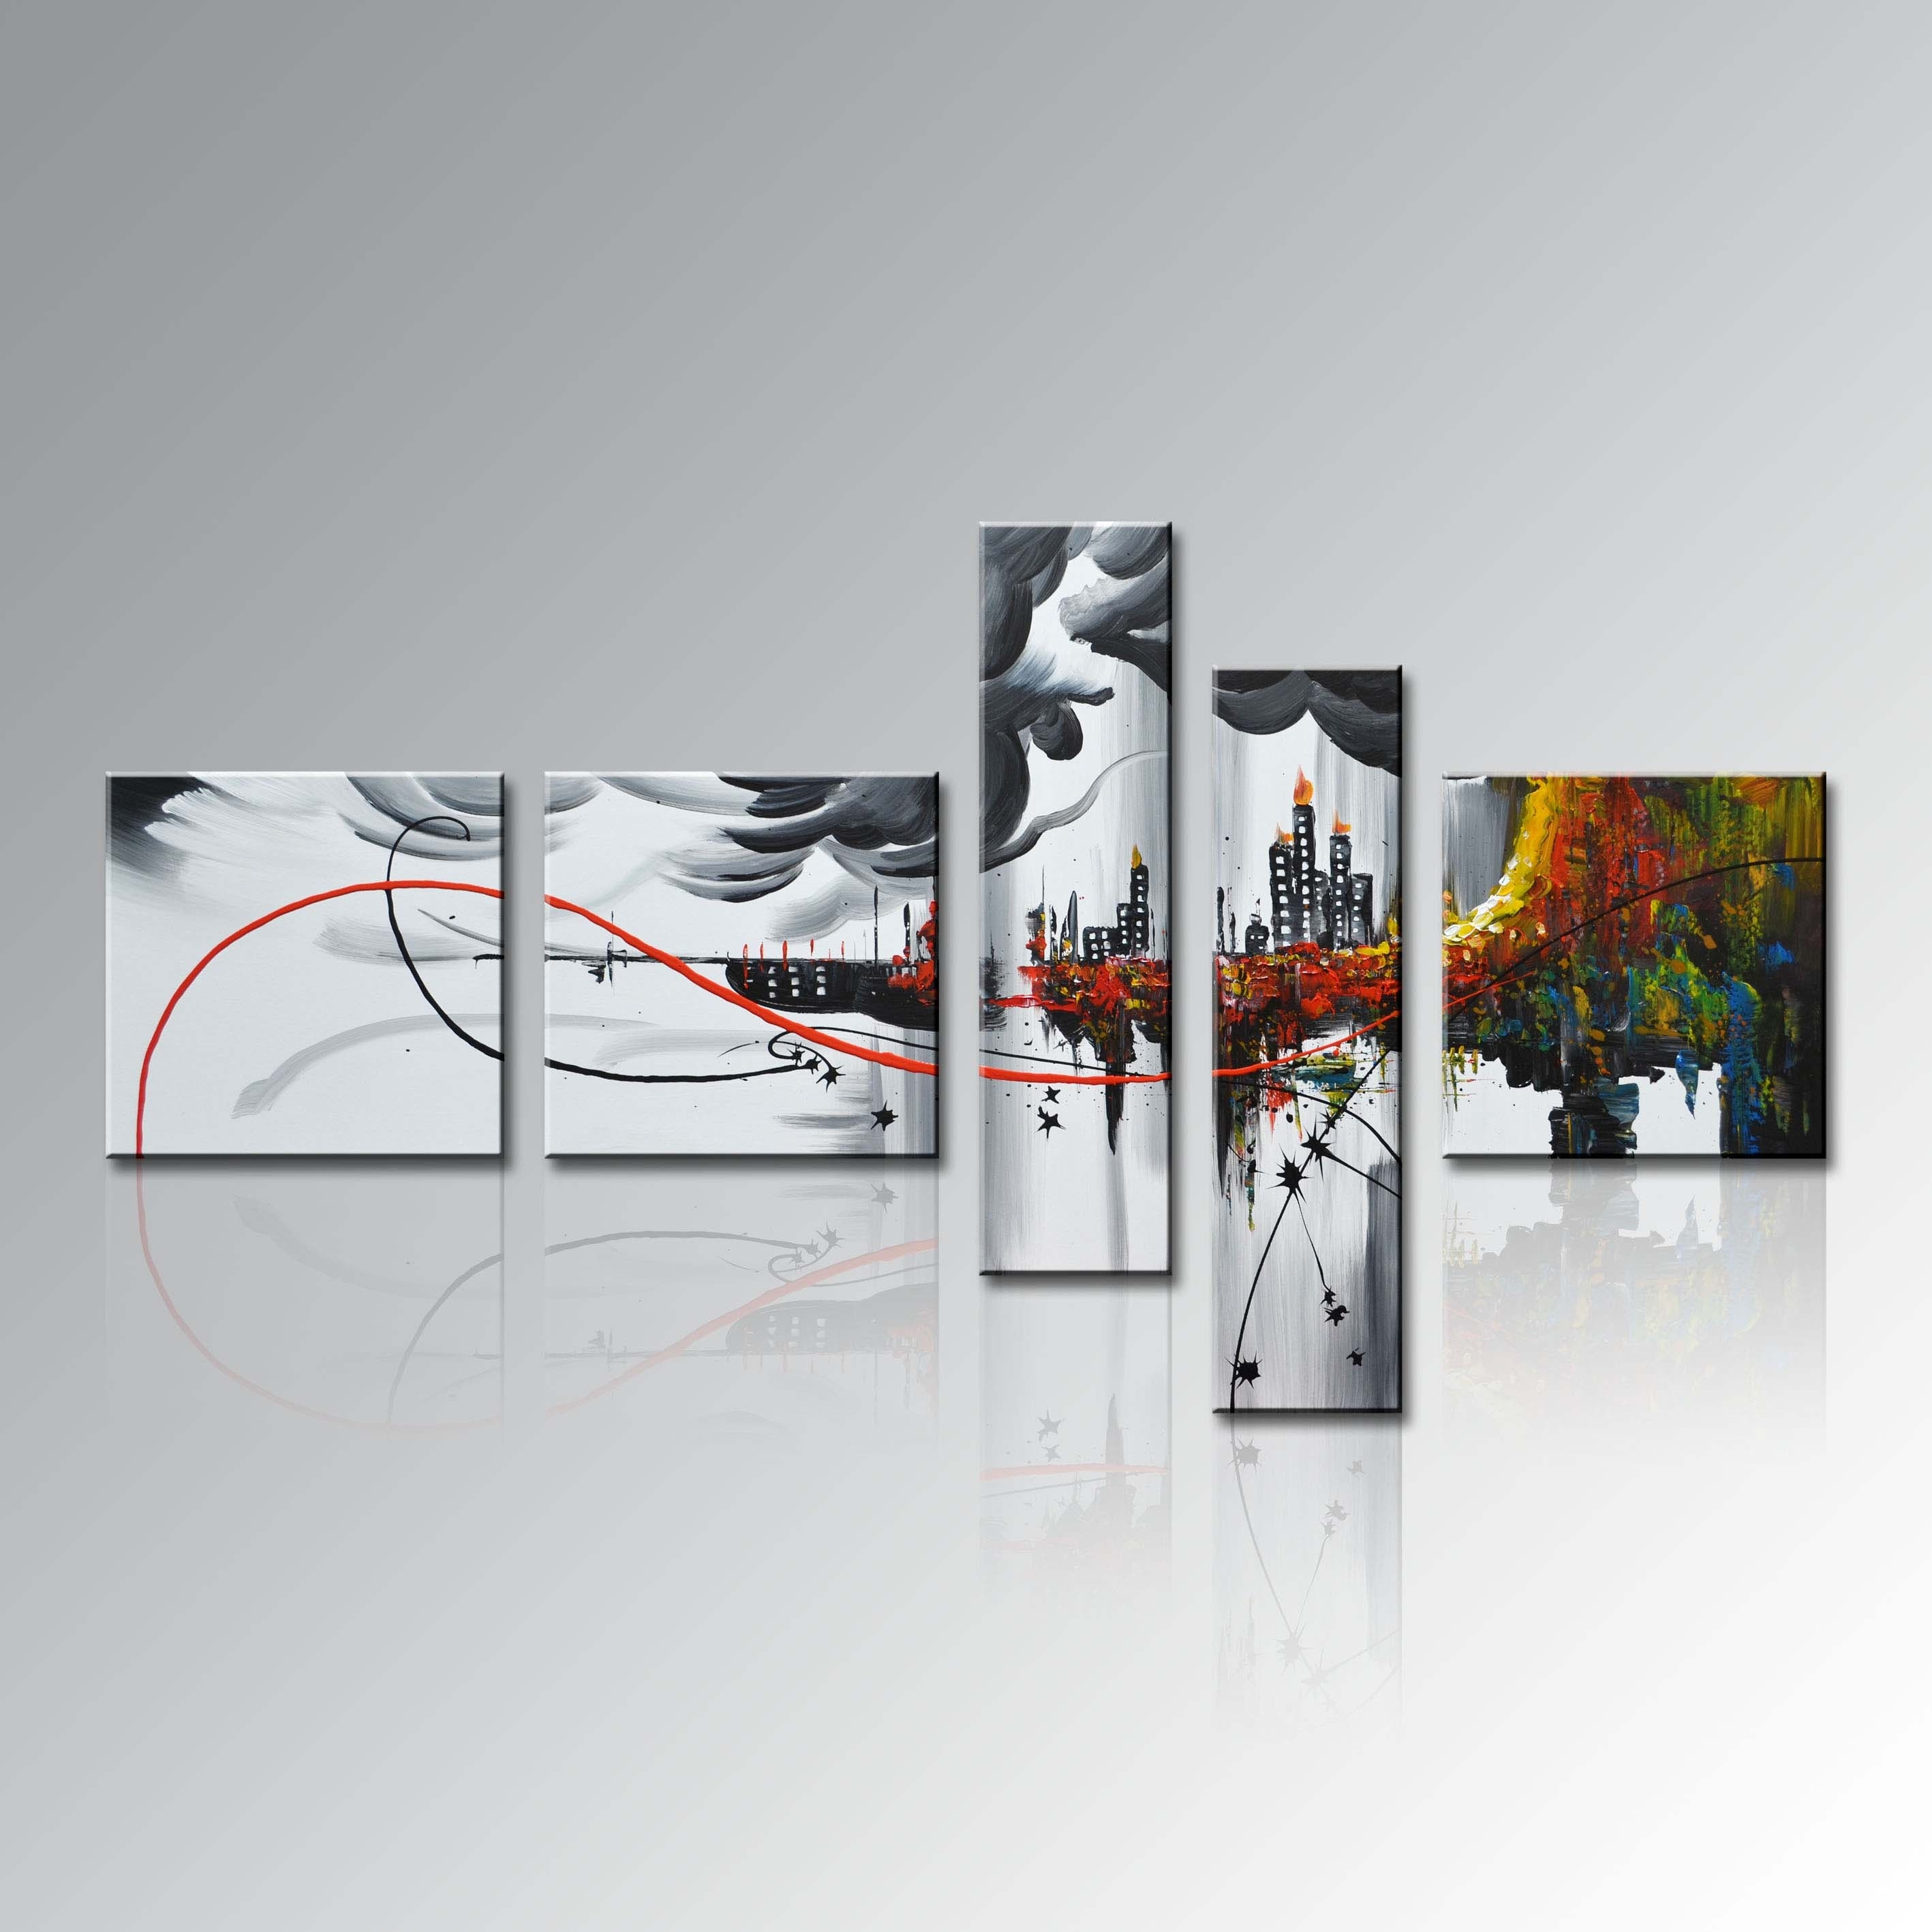 Wall Paintings For Home Modern Framed Home Decor Wall Art Abstract Pertaining To Most Recently Released Modern Framed Wall Art Canvas (Gallery 4 of 20)